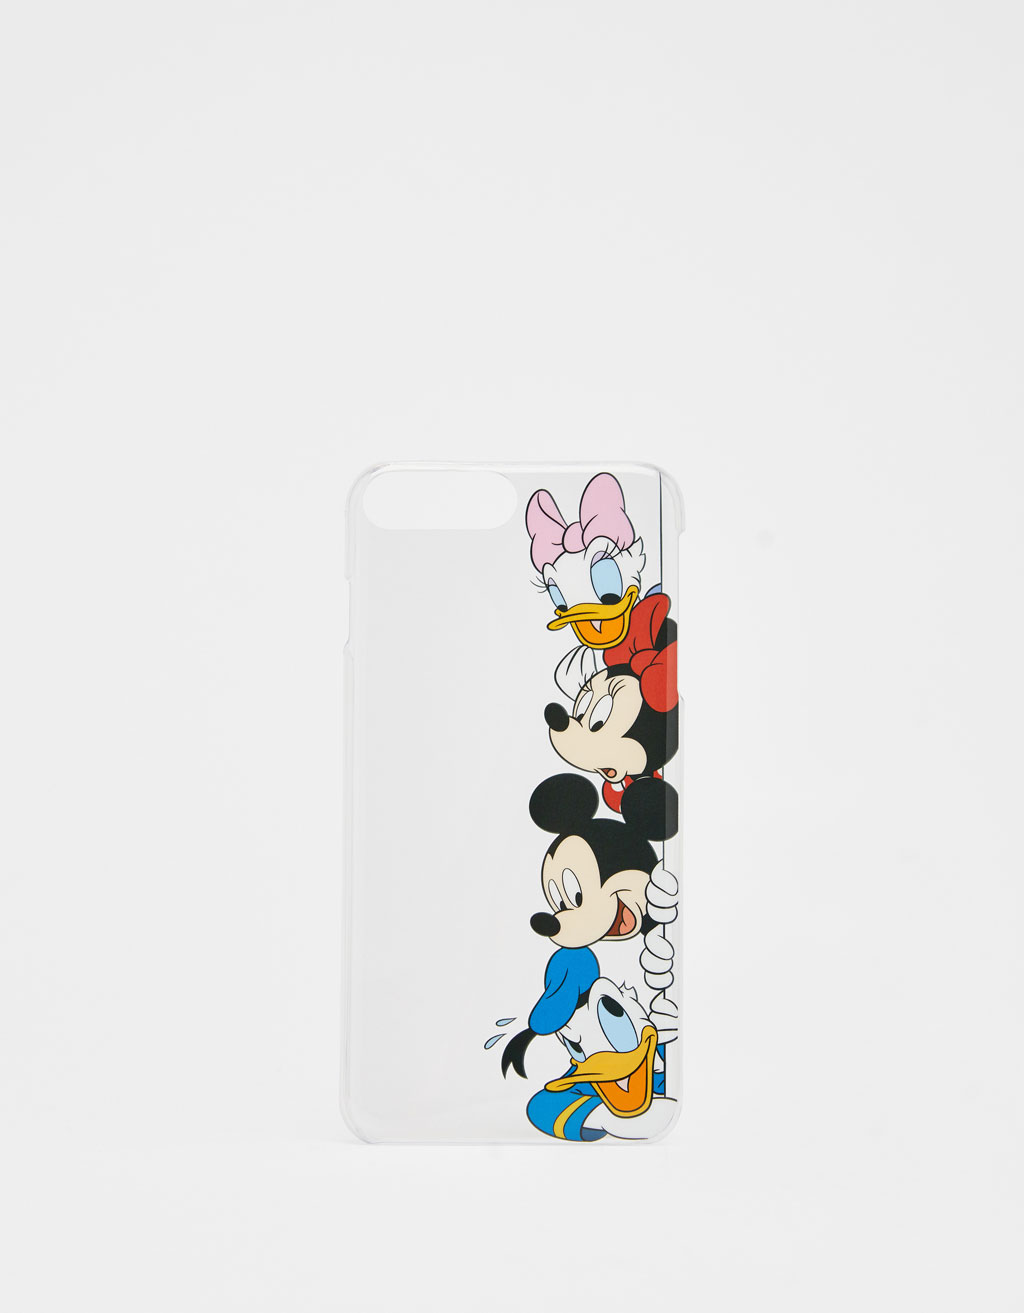 Coque Disney iPhone 6 plus / 7 plus / 8 plus